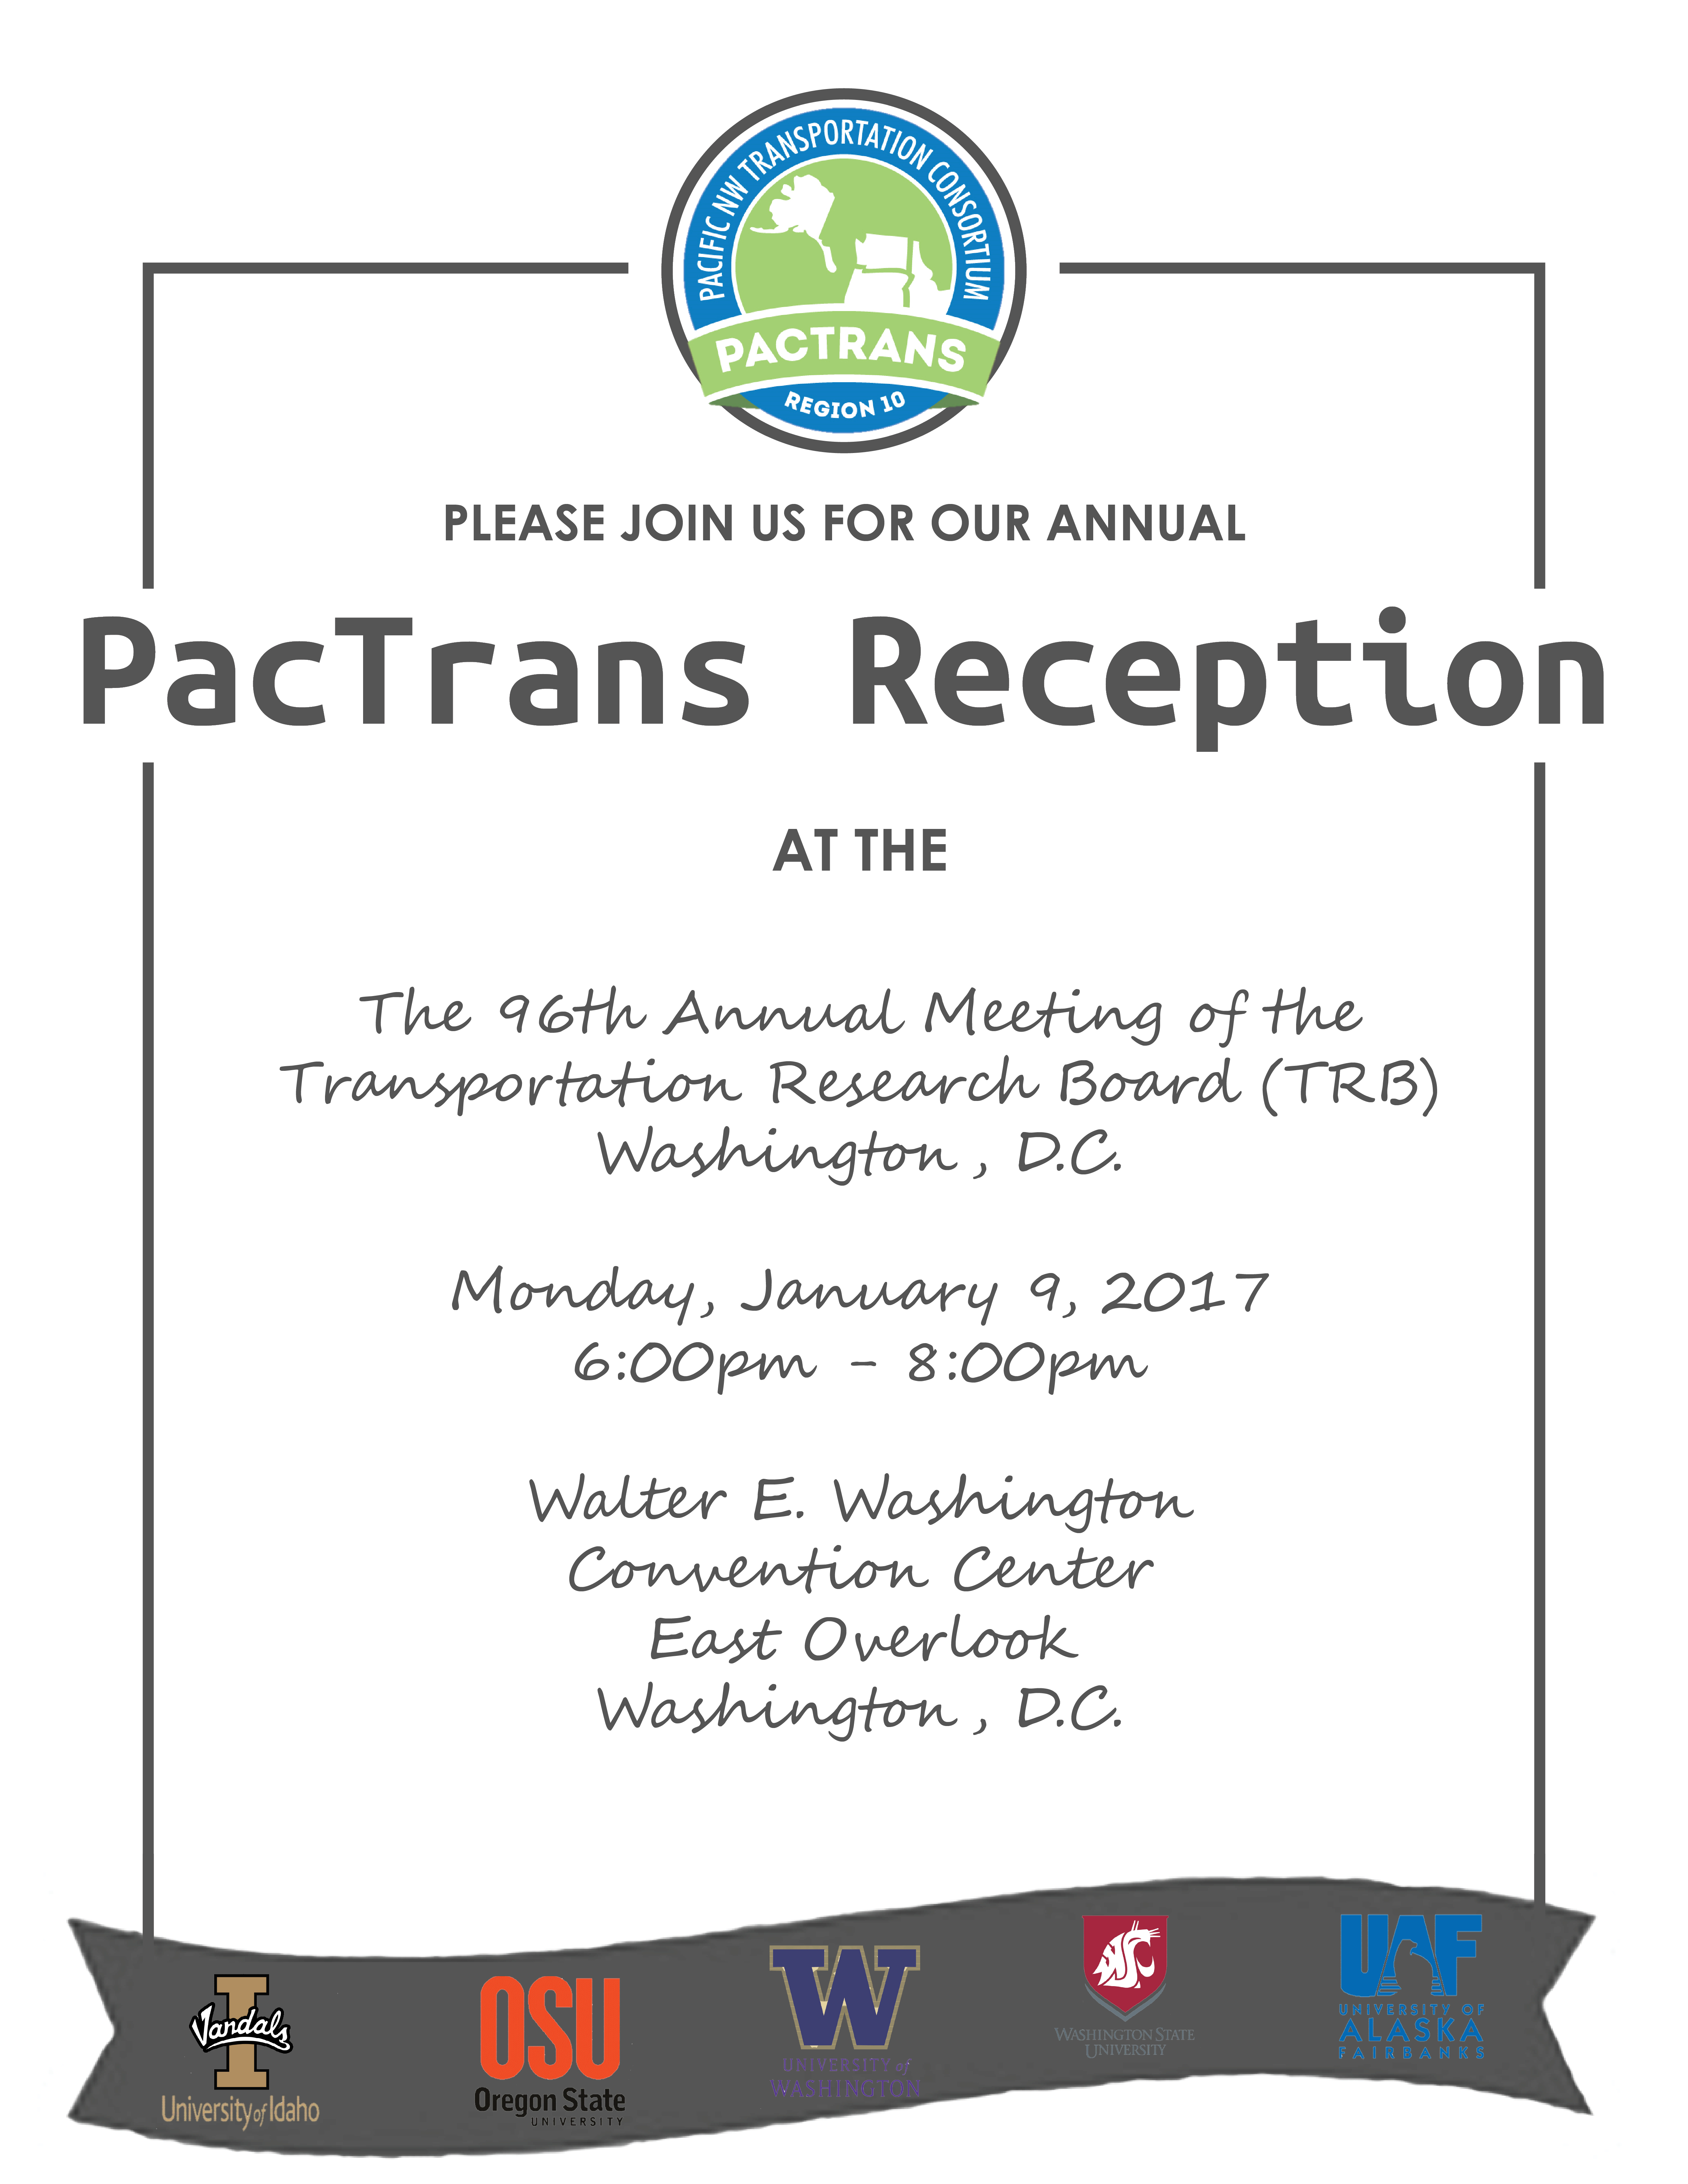 pactrans-reception-flyernew